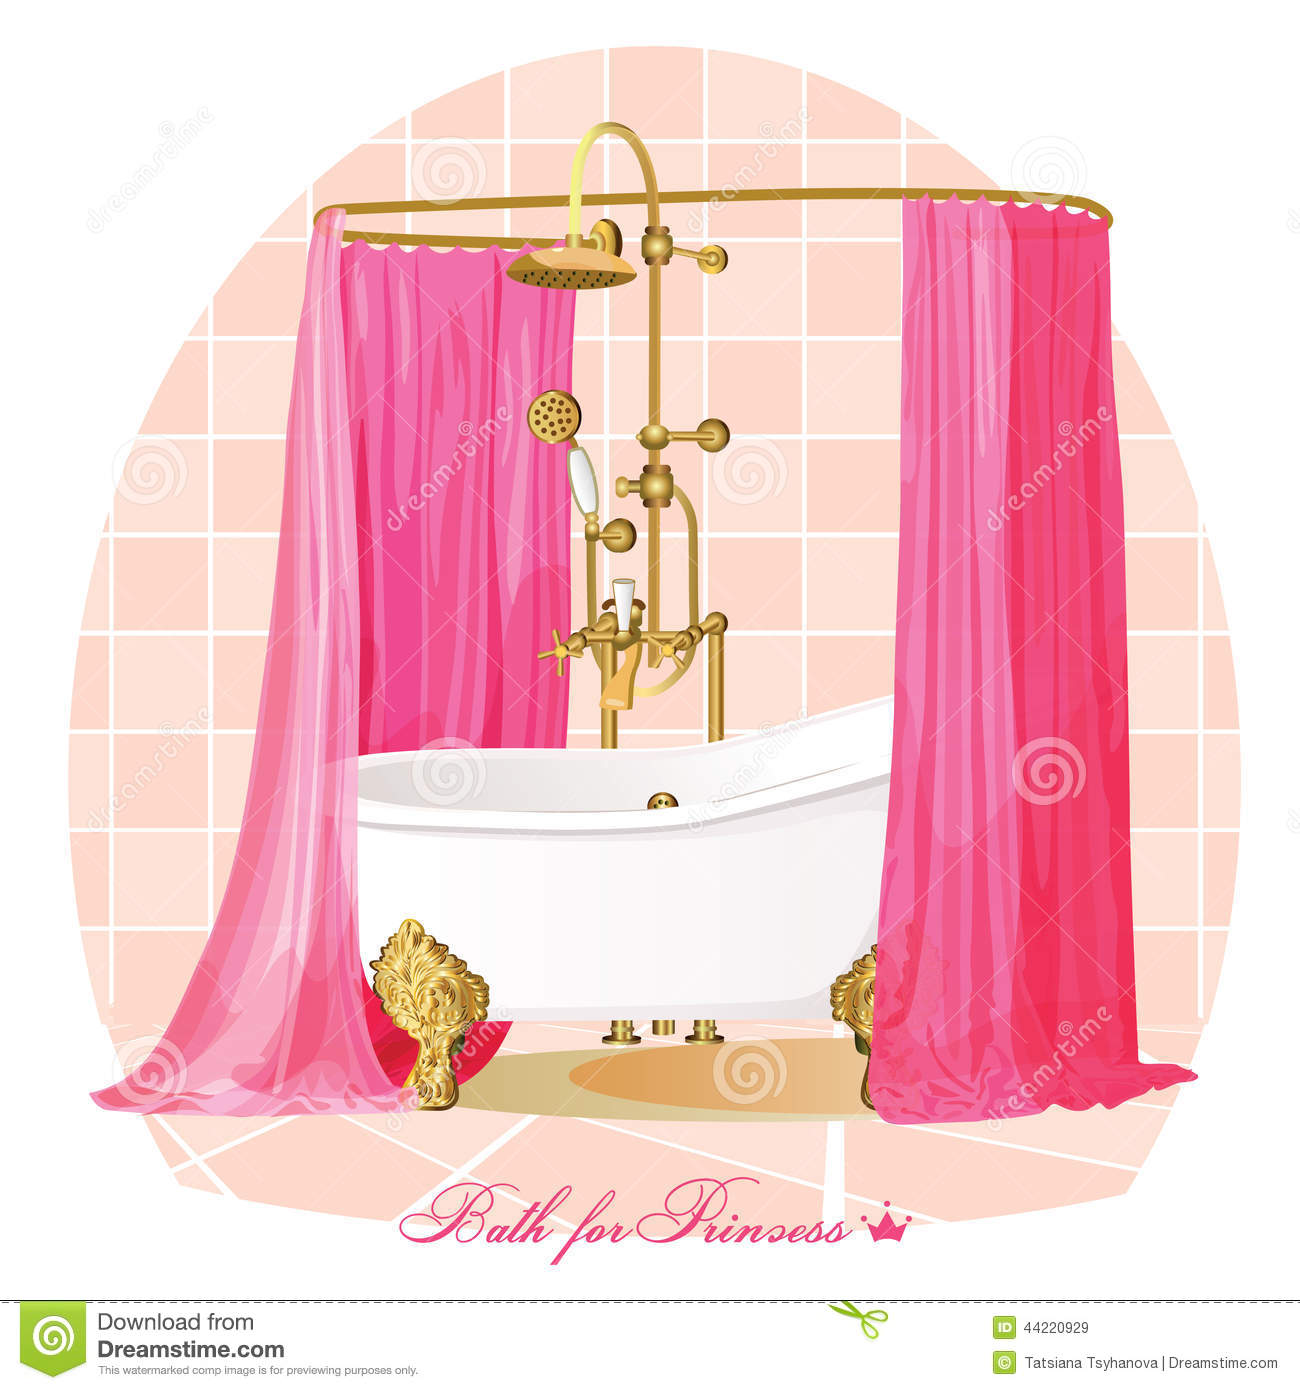 Luxury Bathroom Vector Illustration